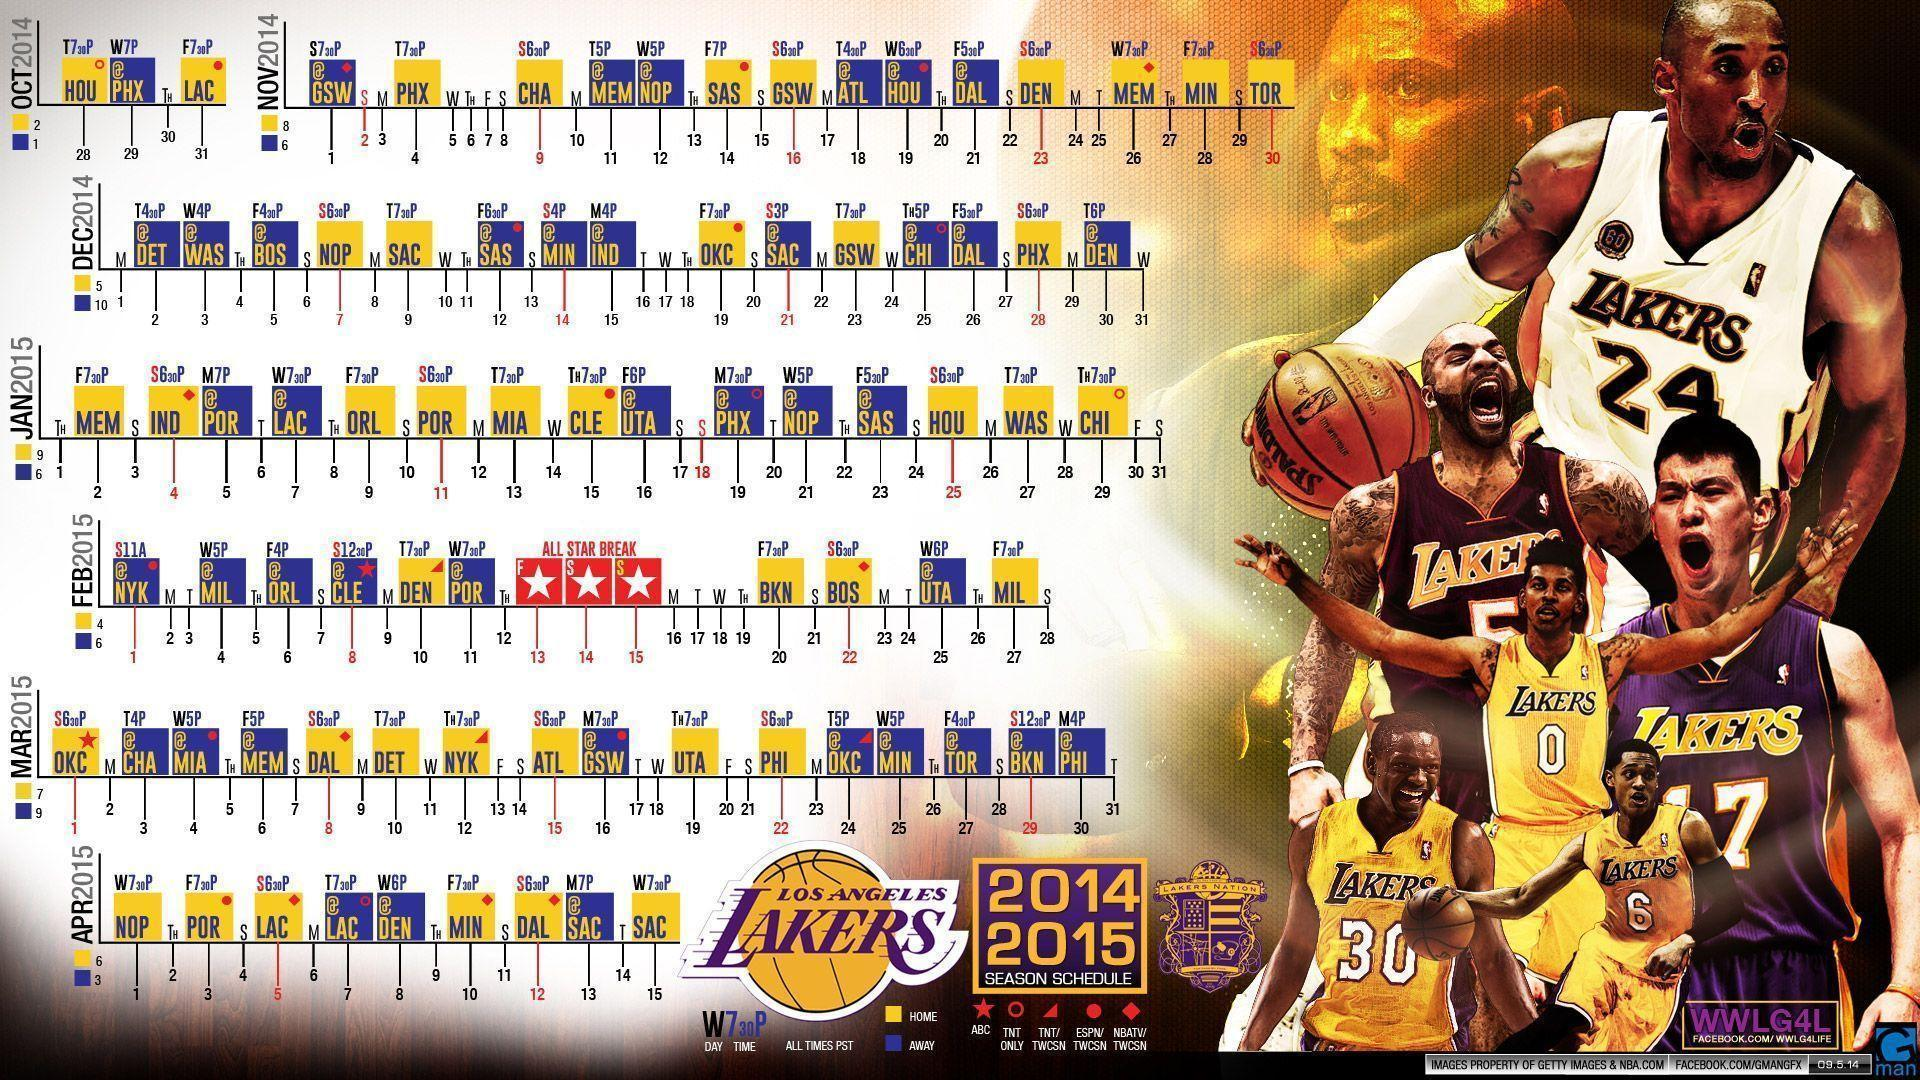 Came across a schedule wallpapers for the 2014